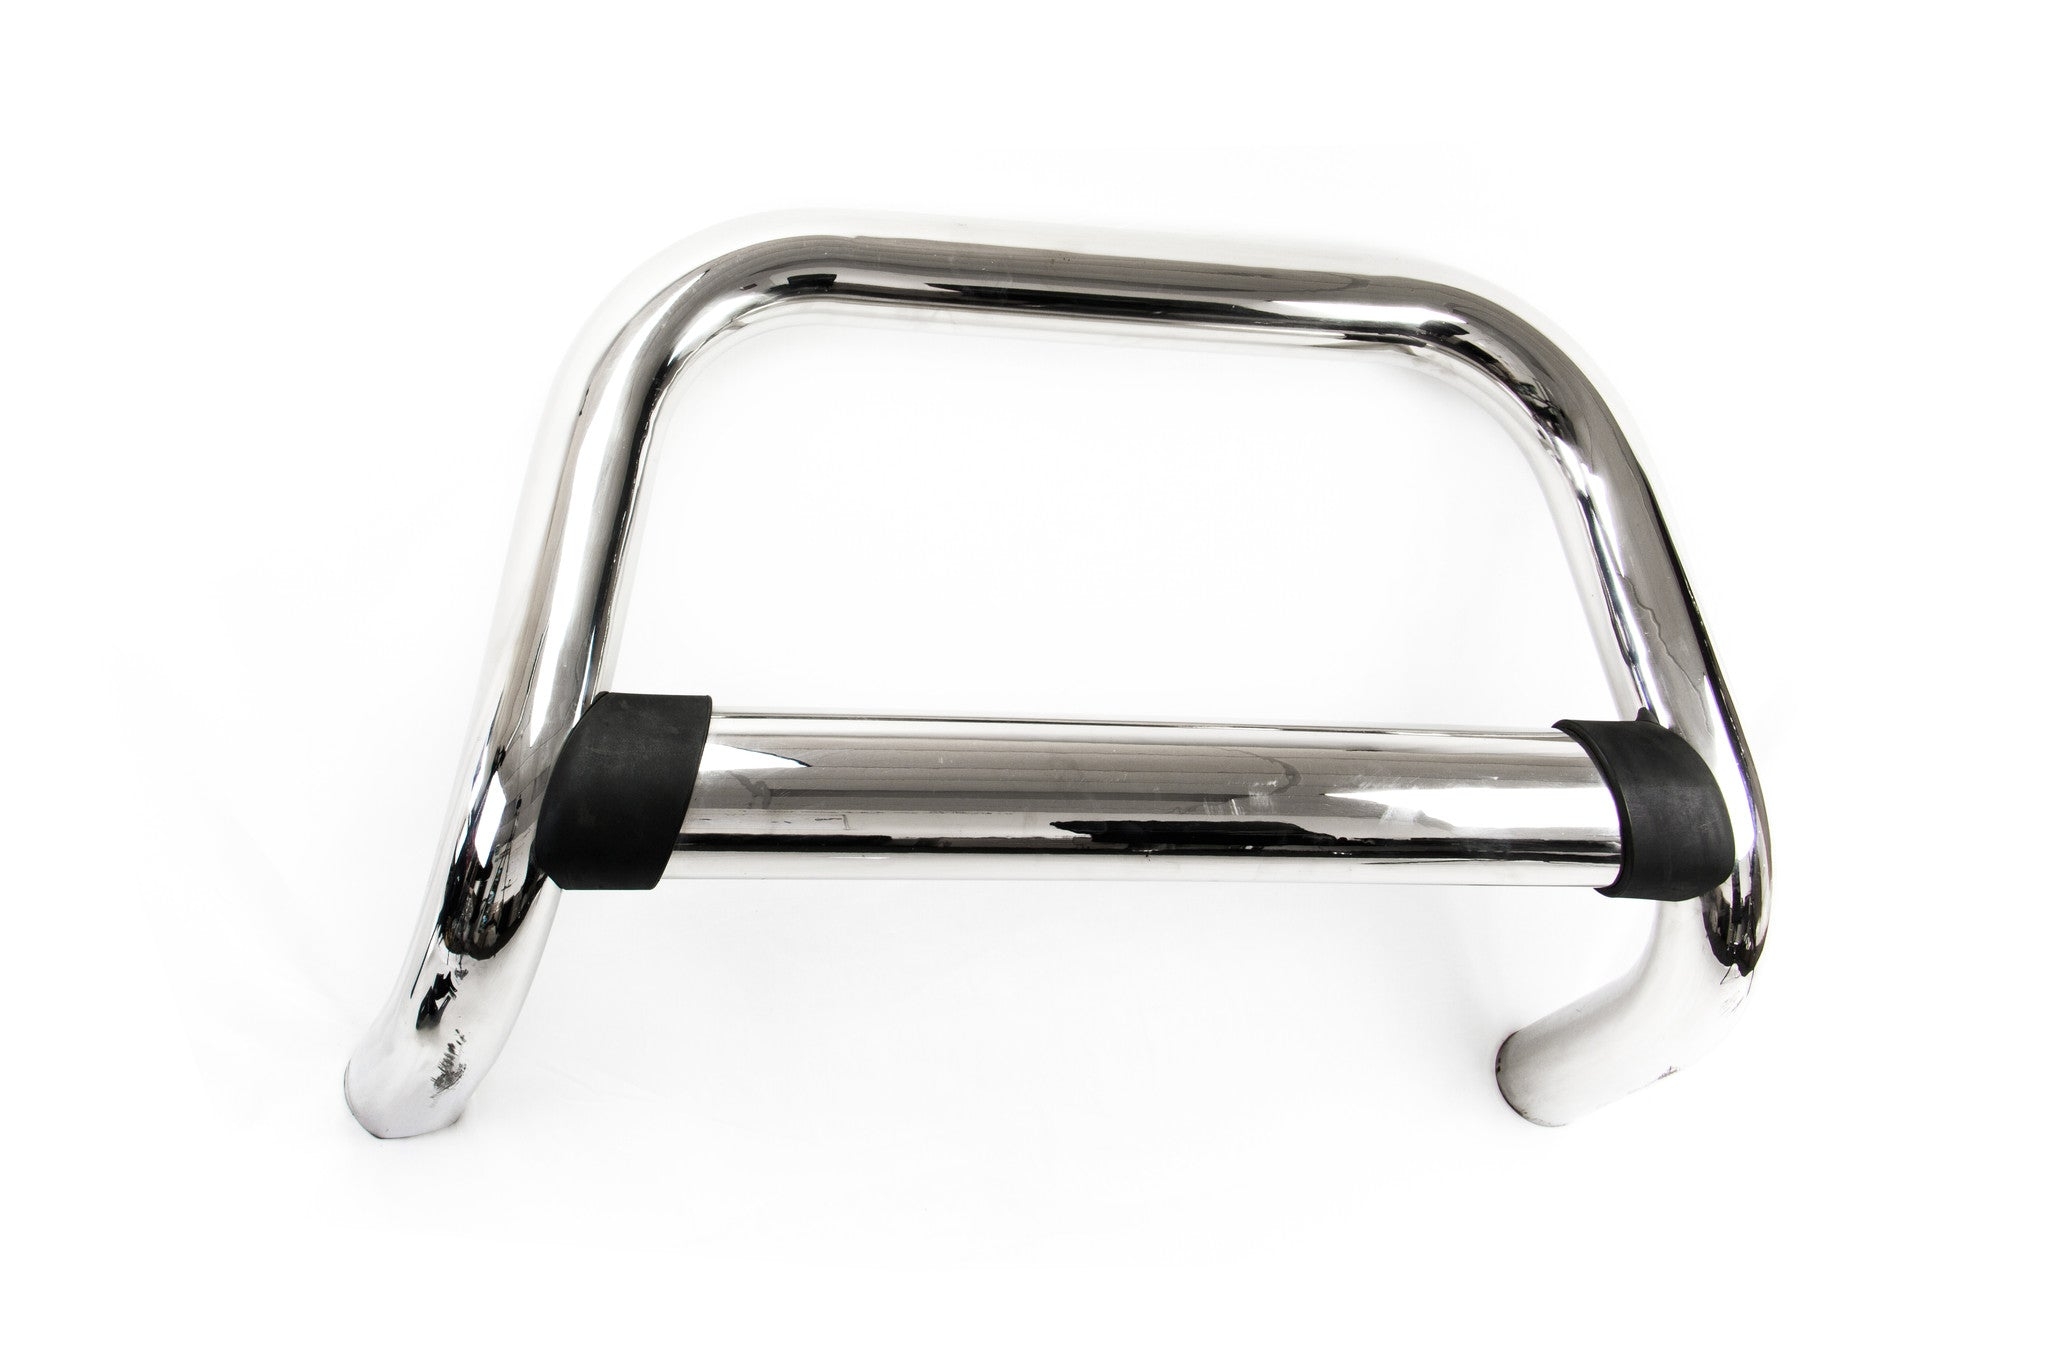 Nudge Bar for Toyota Highlander 2015+